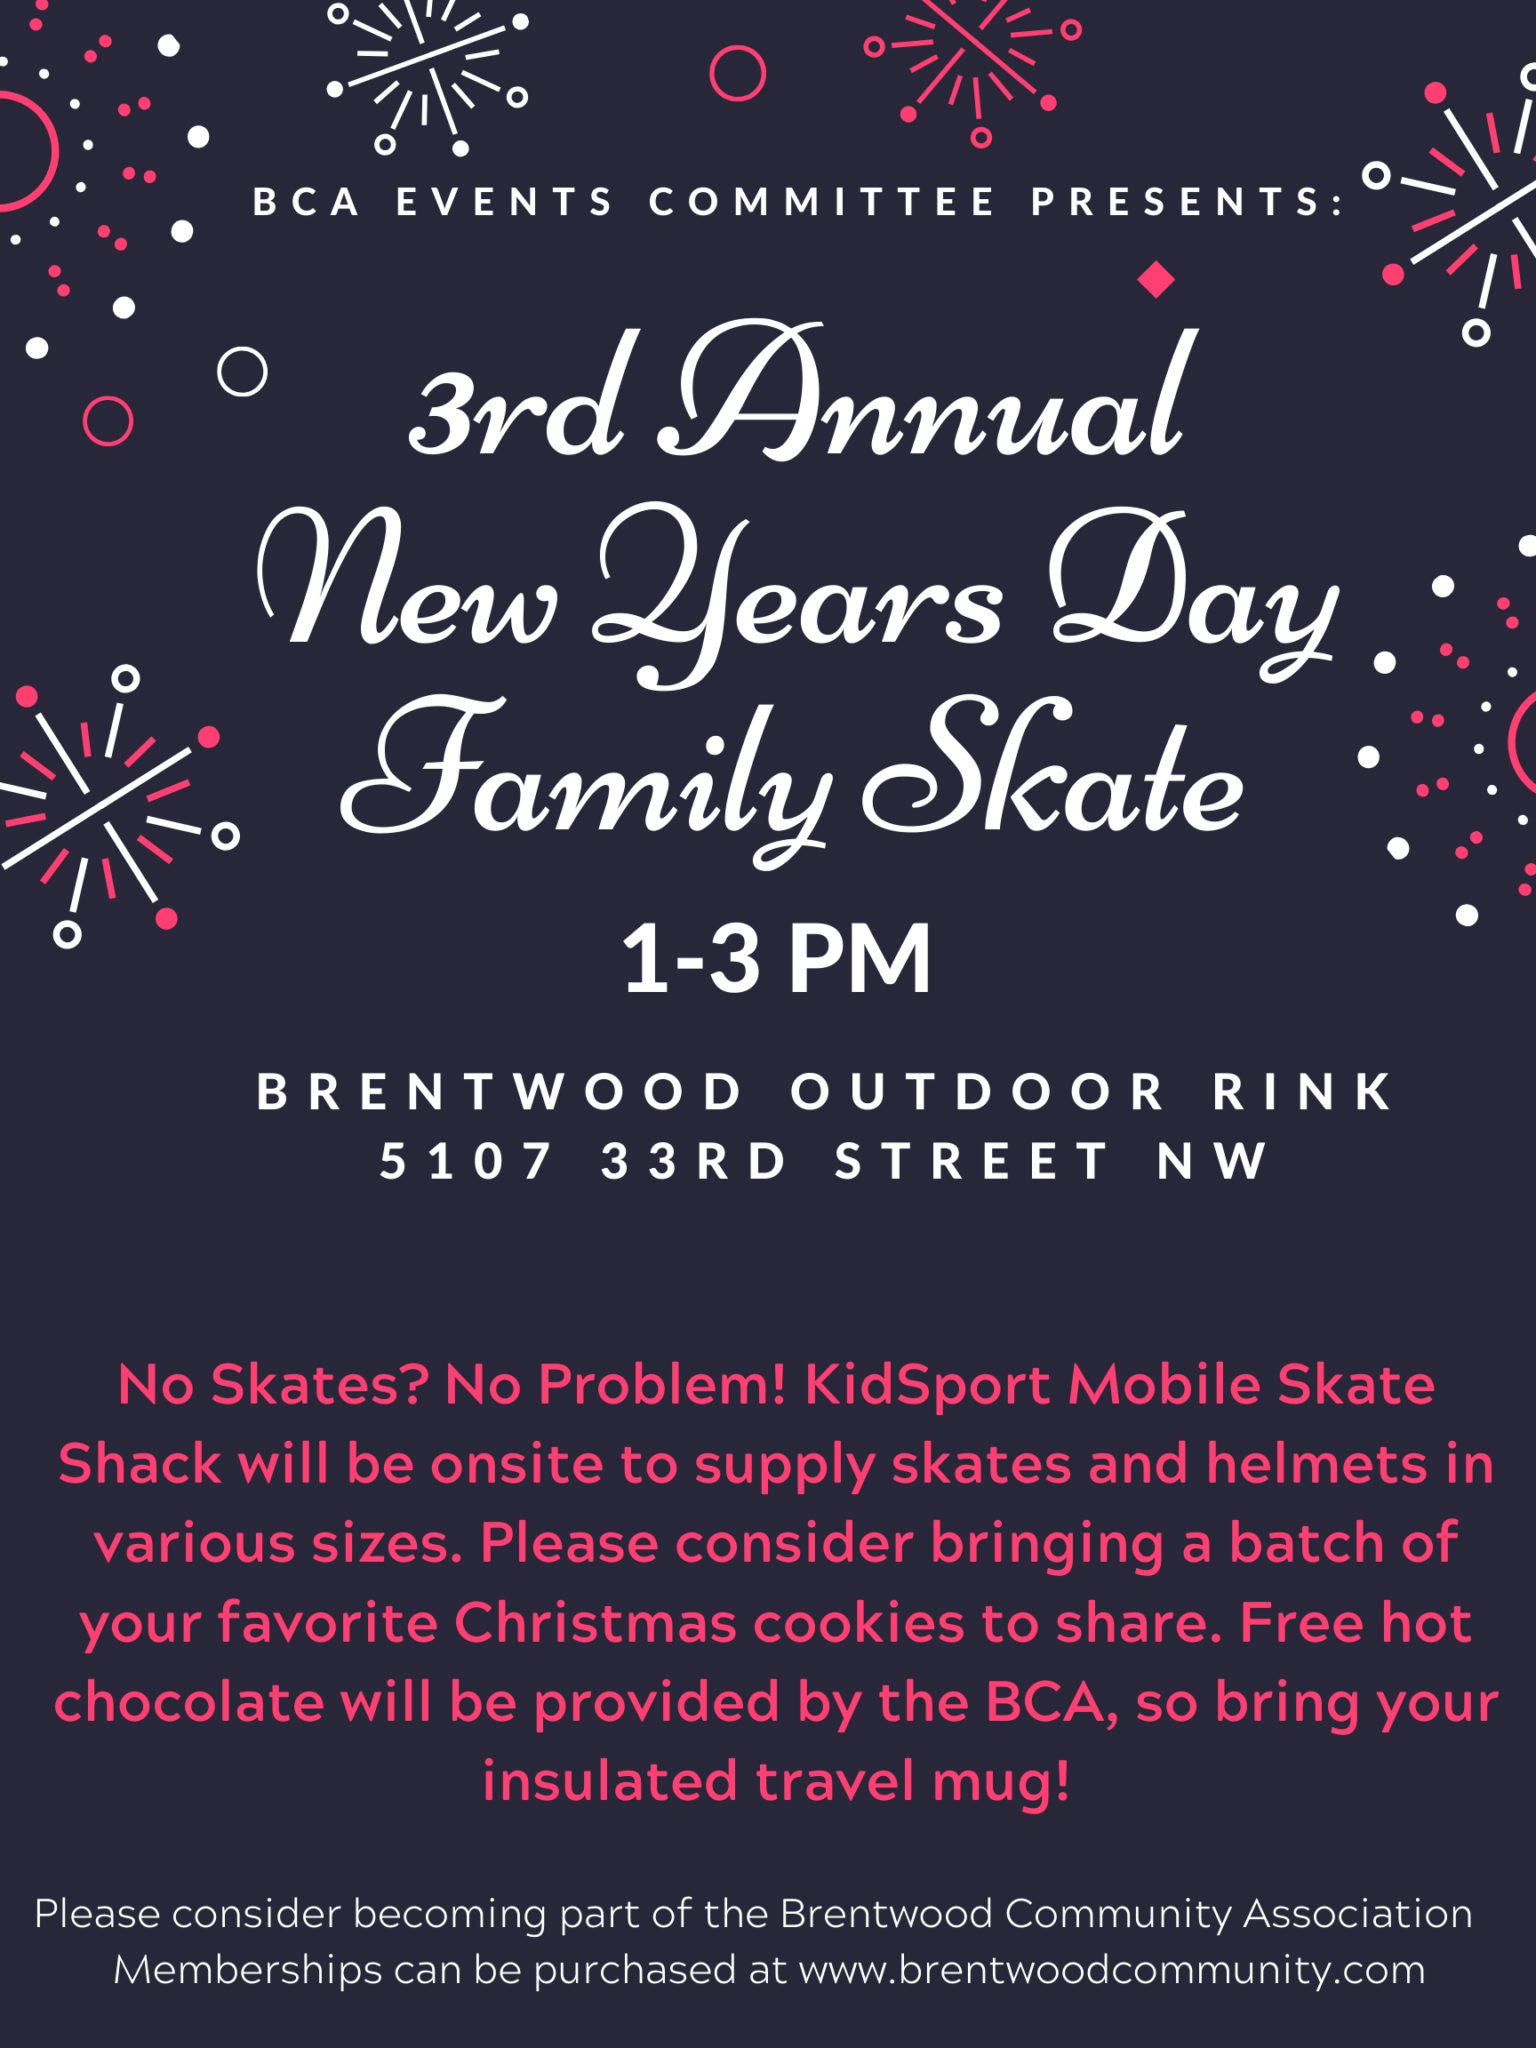 3rd Annual New Years Day Family Skate